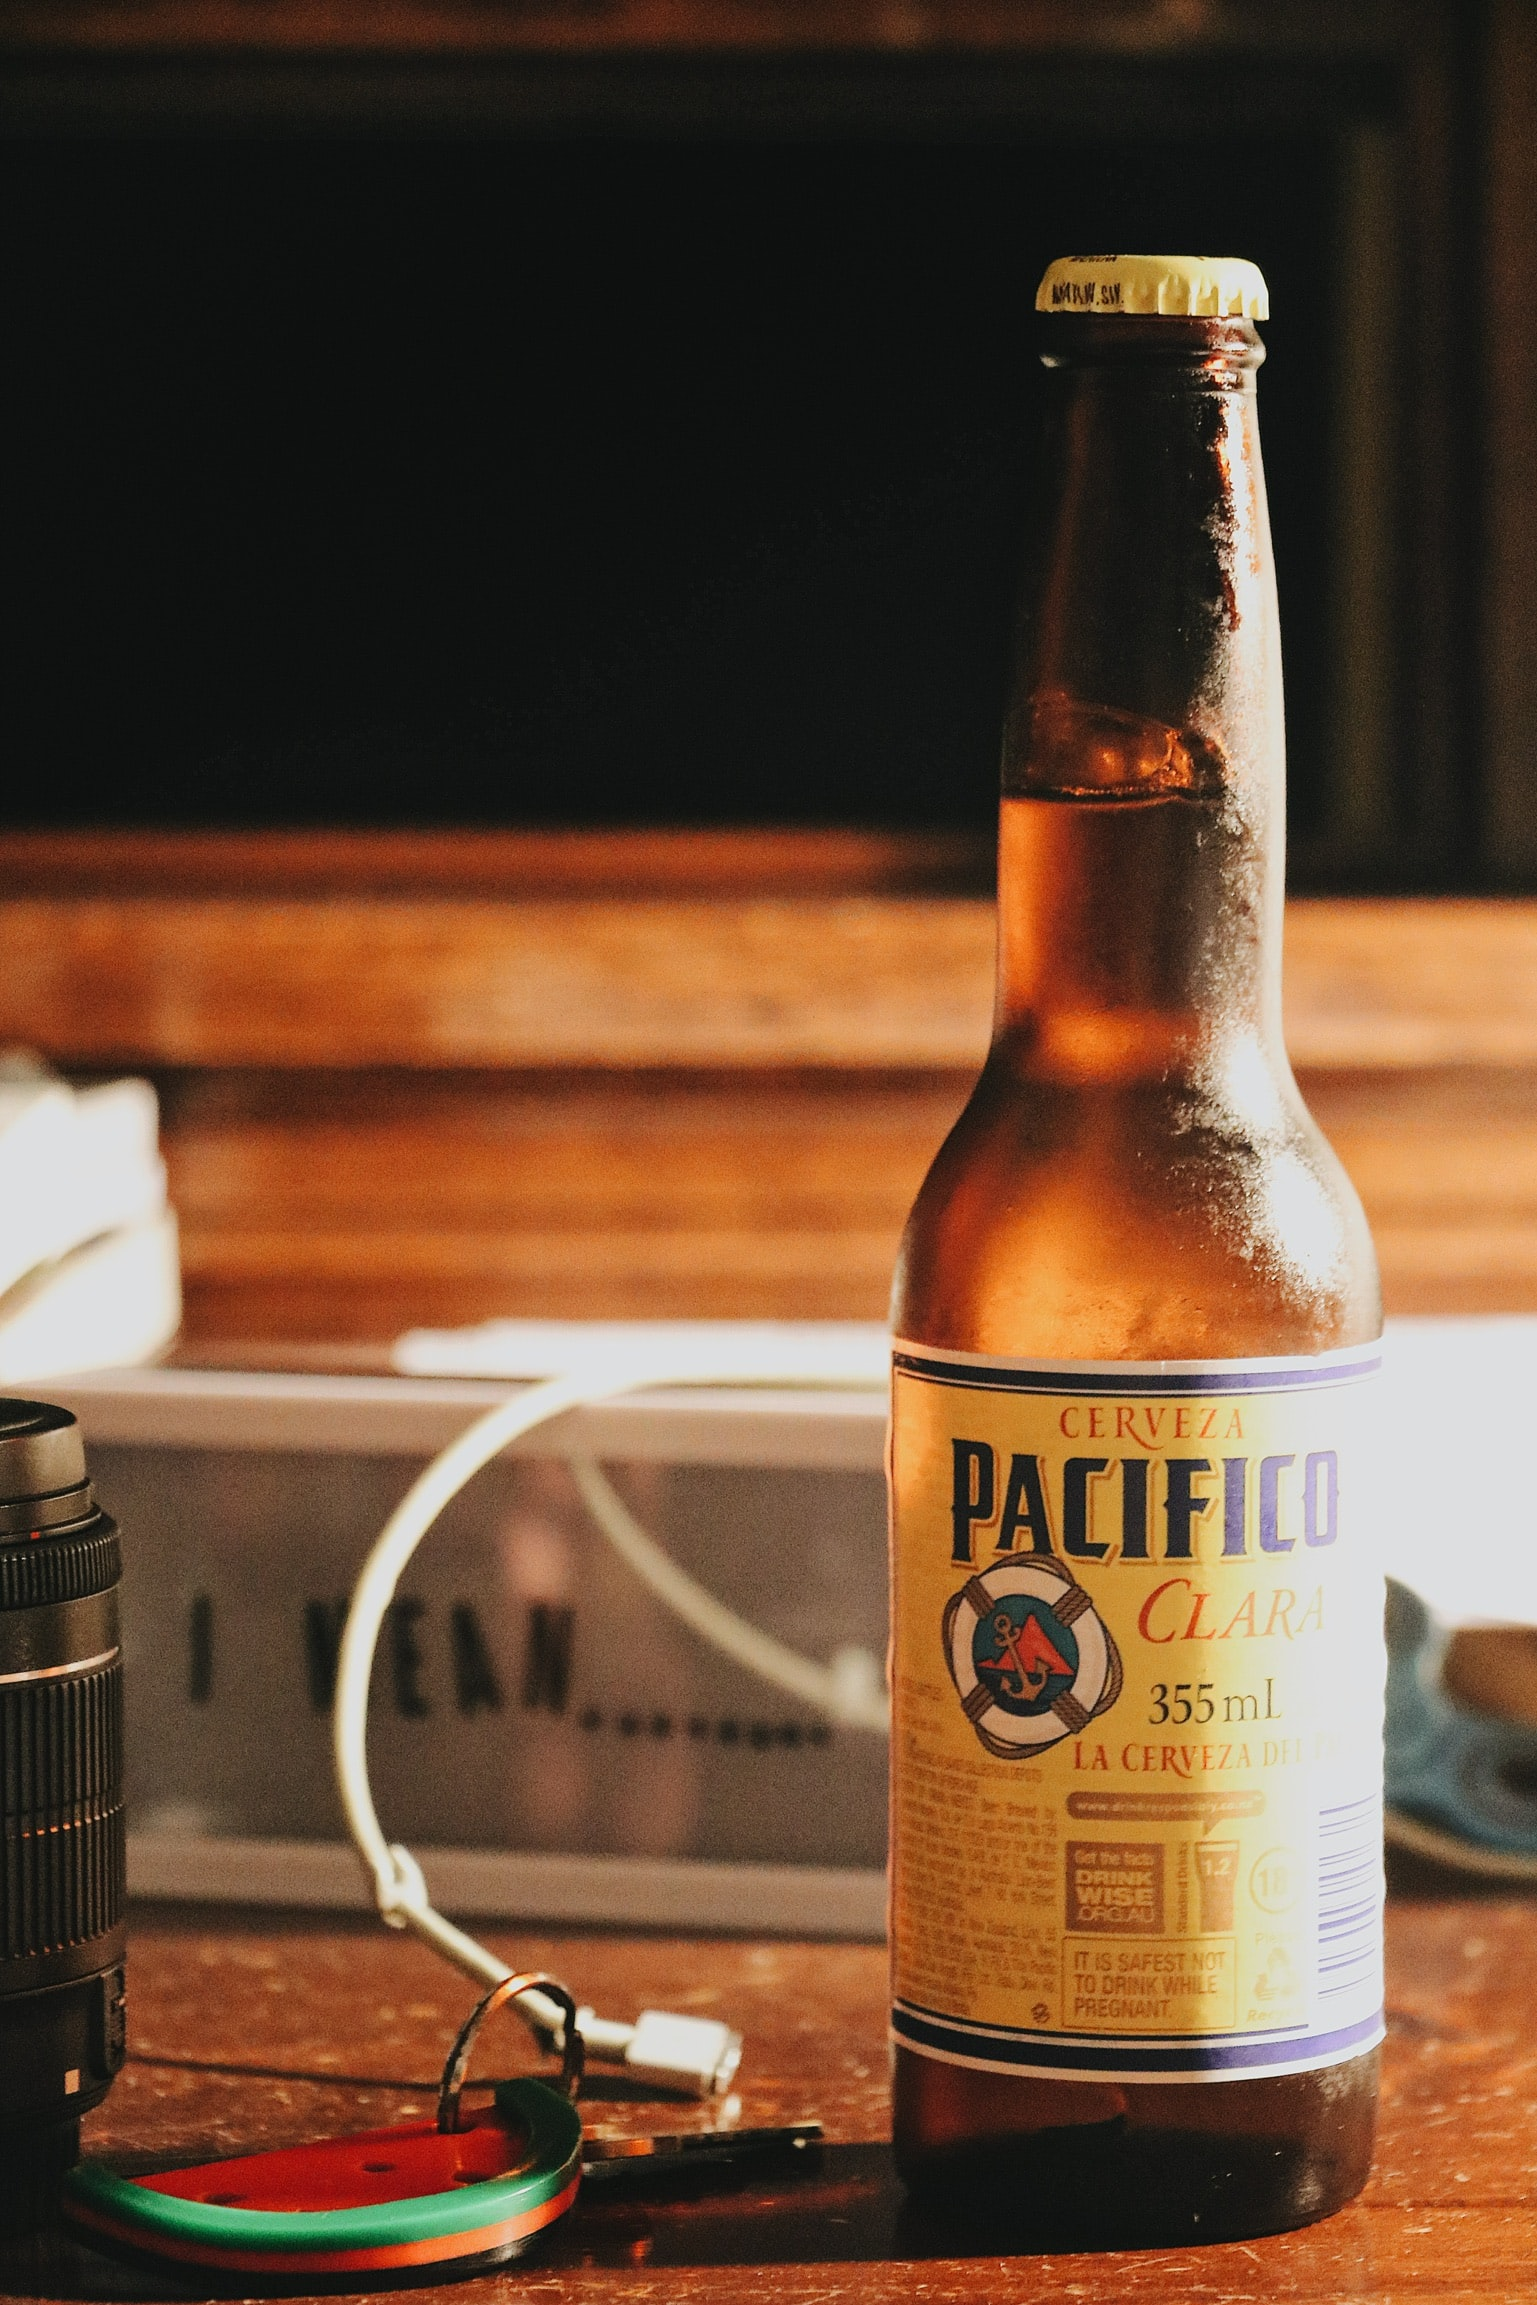 Cerveza Pacifico beer bottle